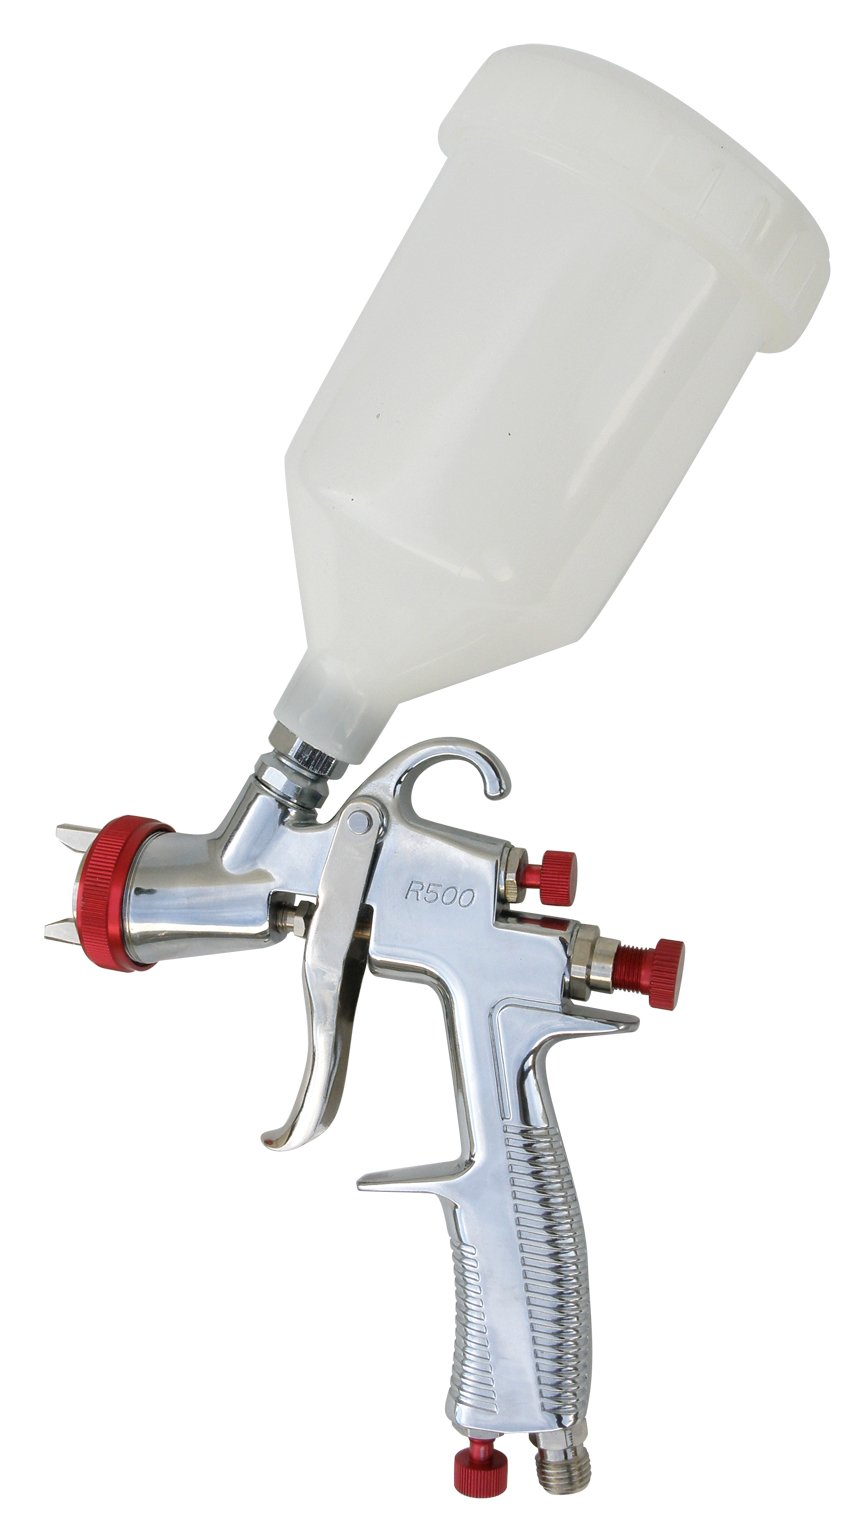 SPRAYIT SP-33000 LVLP Gravity Feed Spray Gun